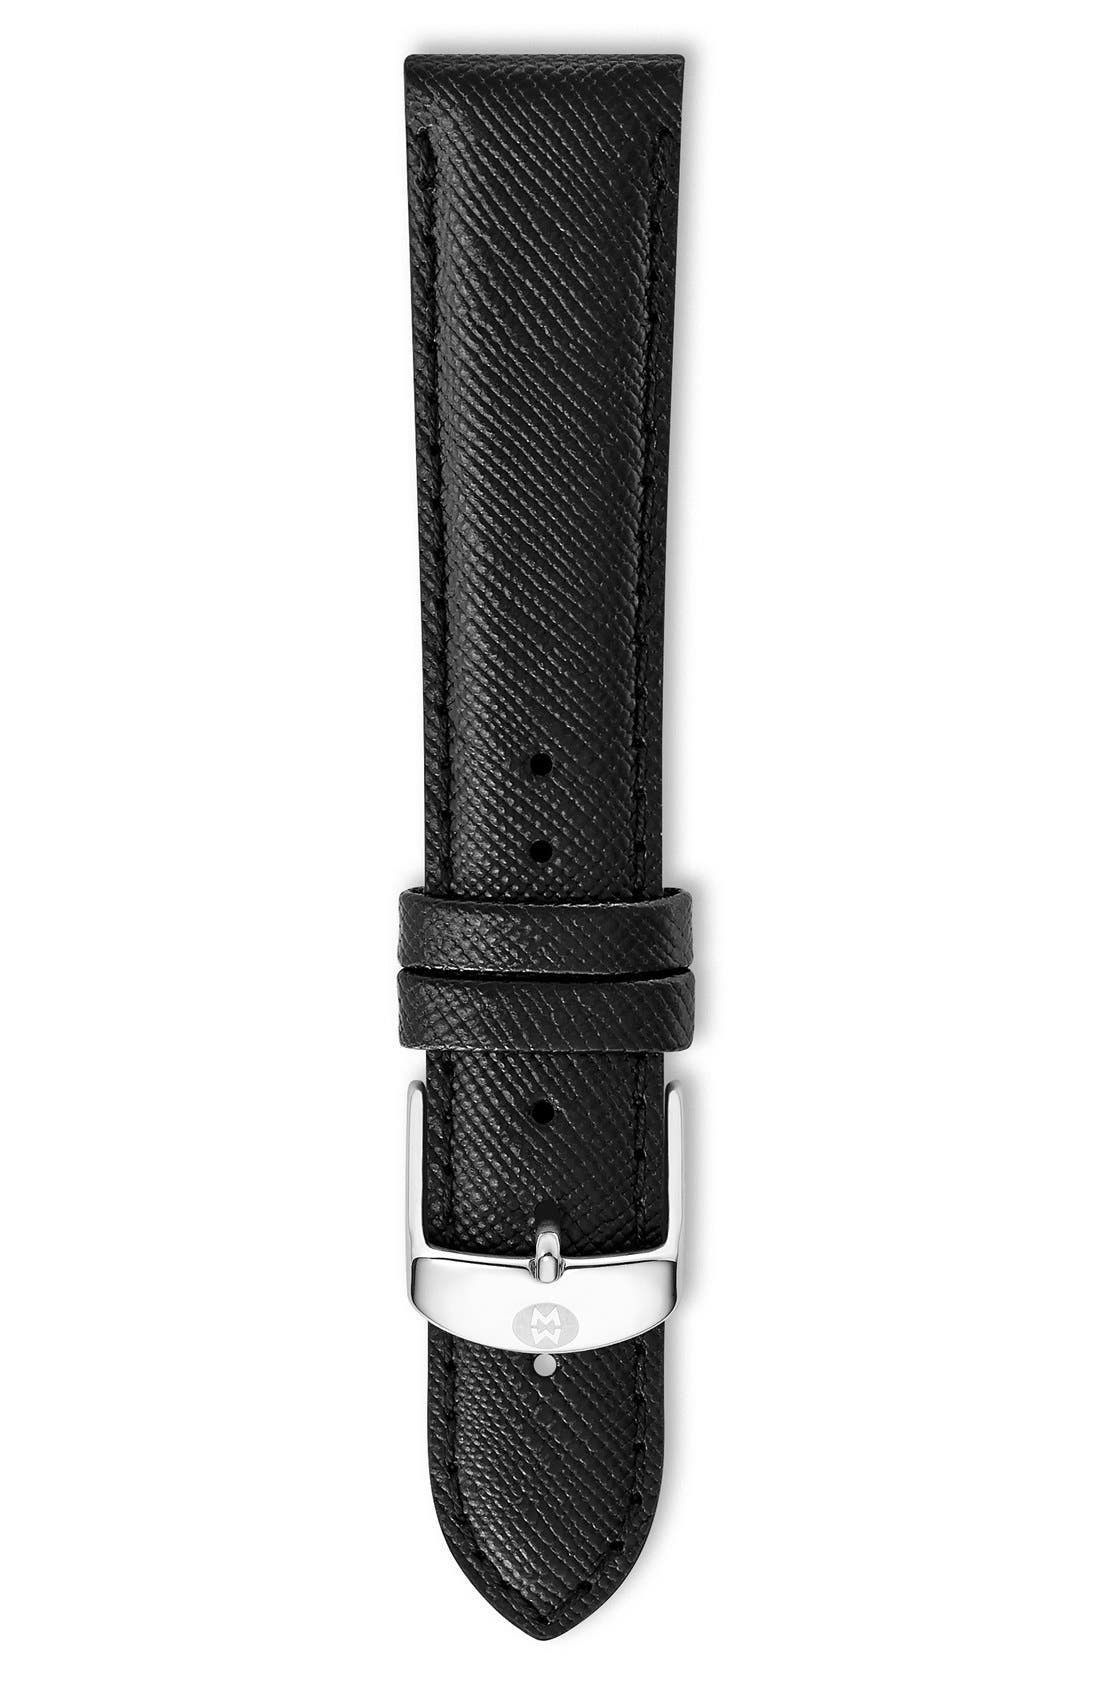 Main Image - MICHELE 16mm Saffiano Leather Watch Strap